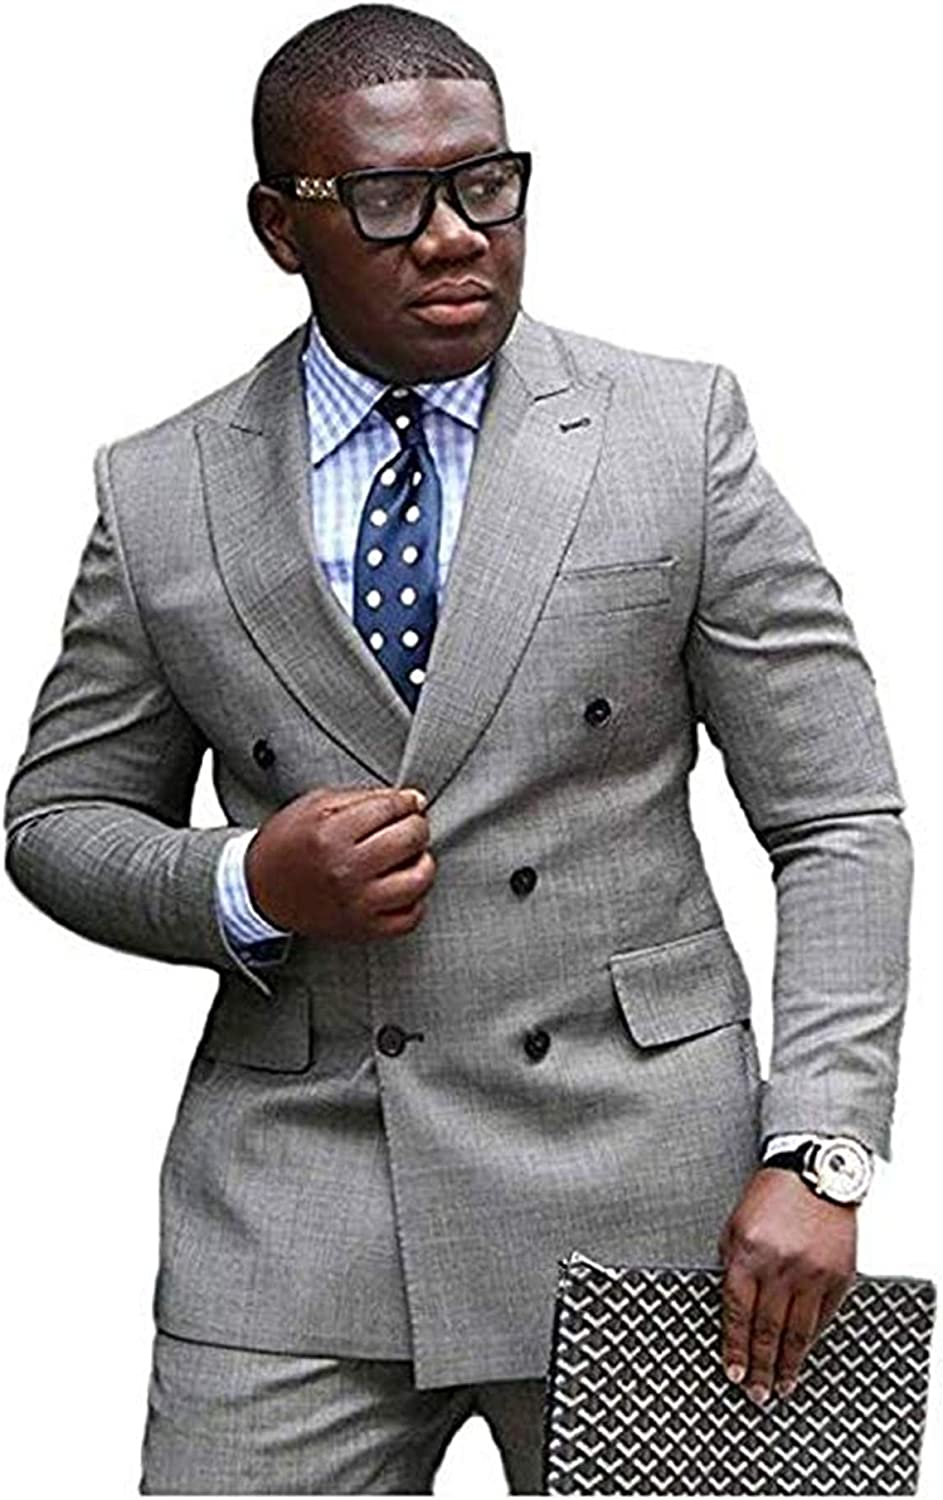 Wxili Grey Suits for Men Double-Breasted Two Piece Business Wedding Mens Suit Peaked Lapel 022